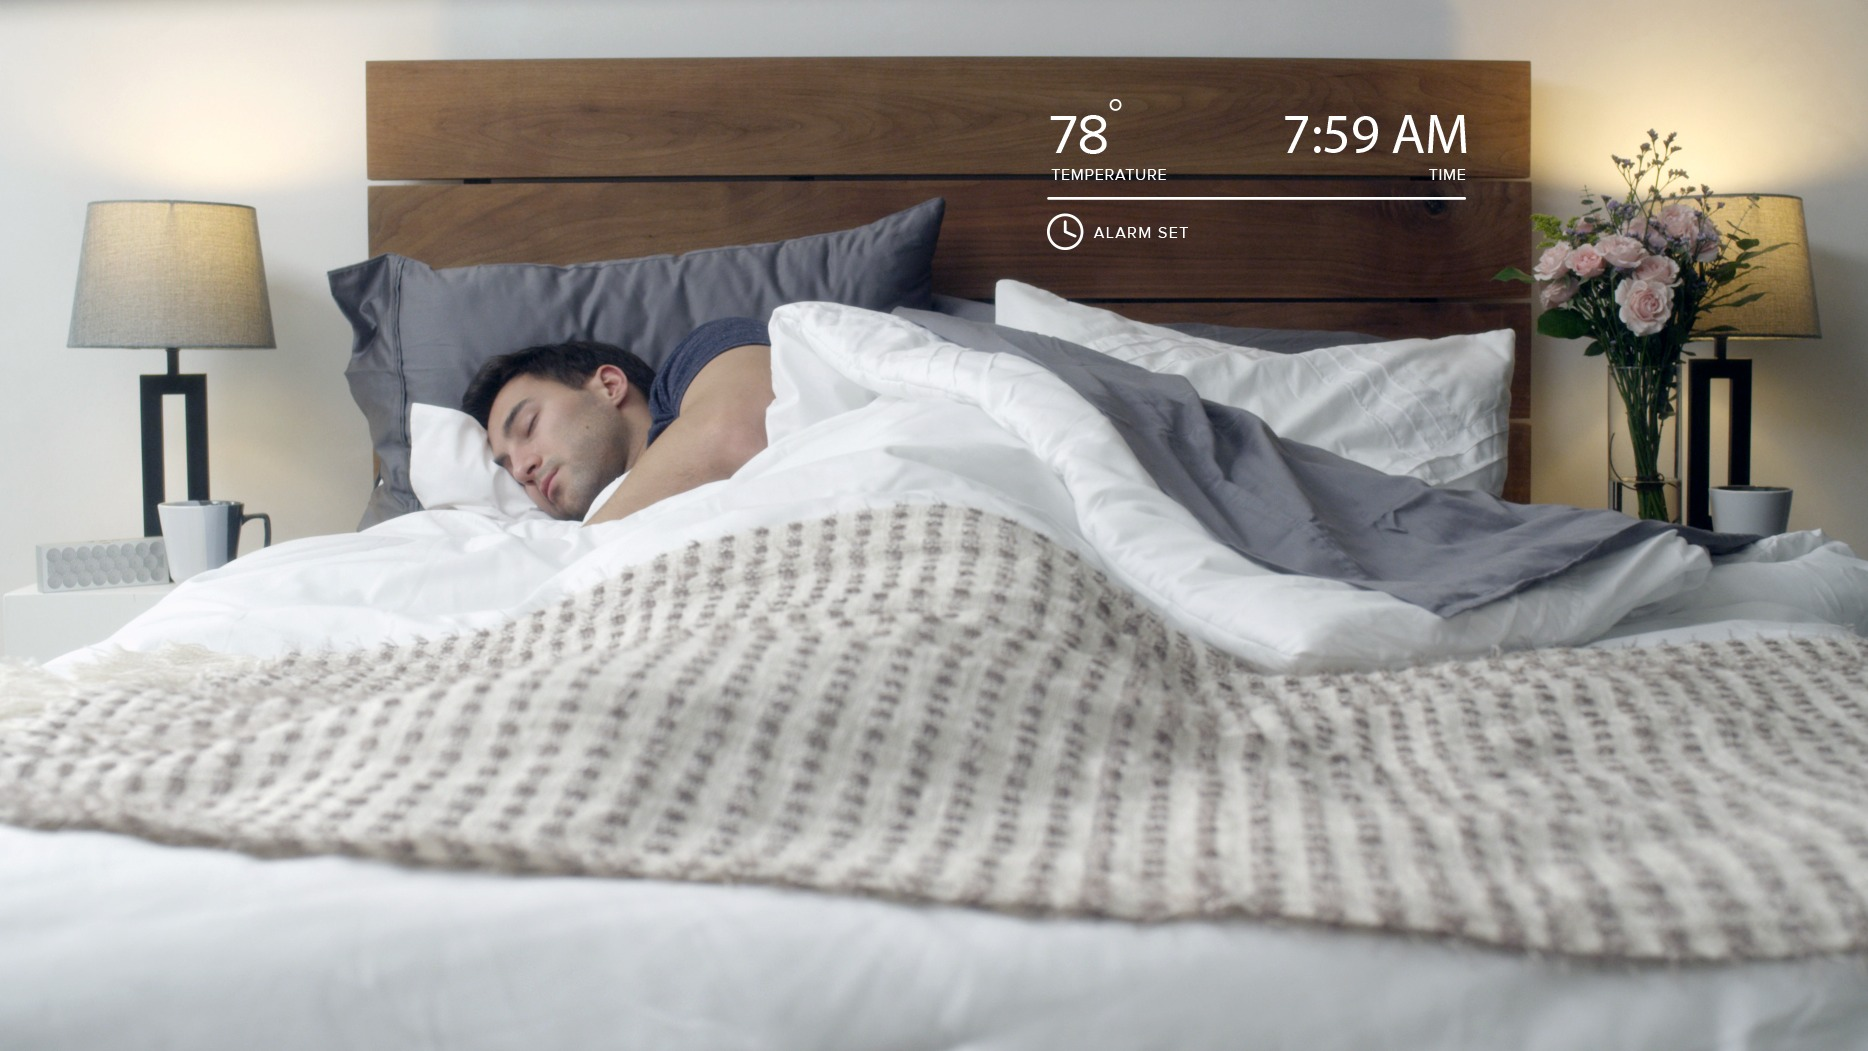 ​Luna smart bed storms Indiegogo